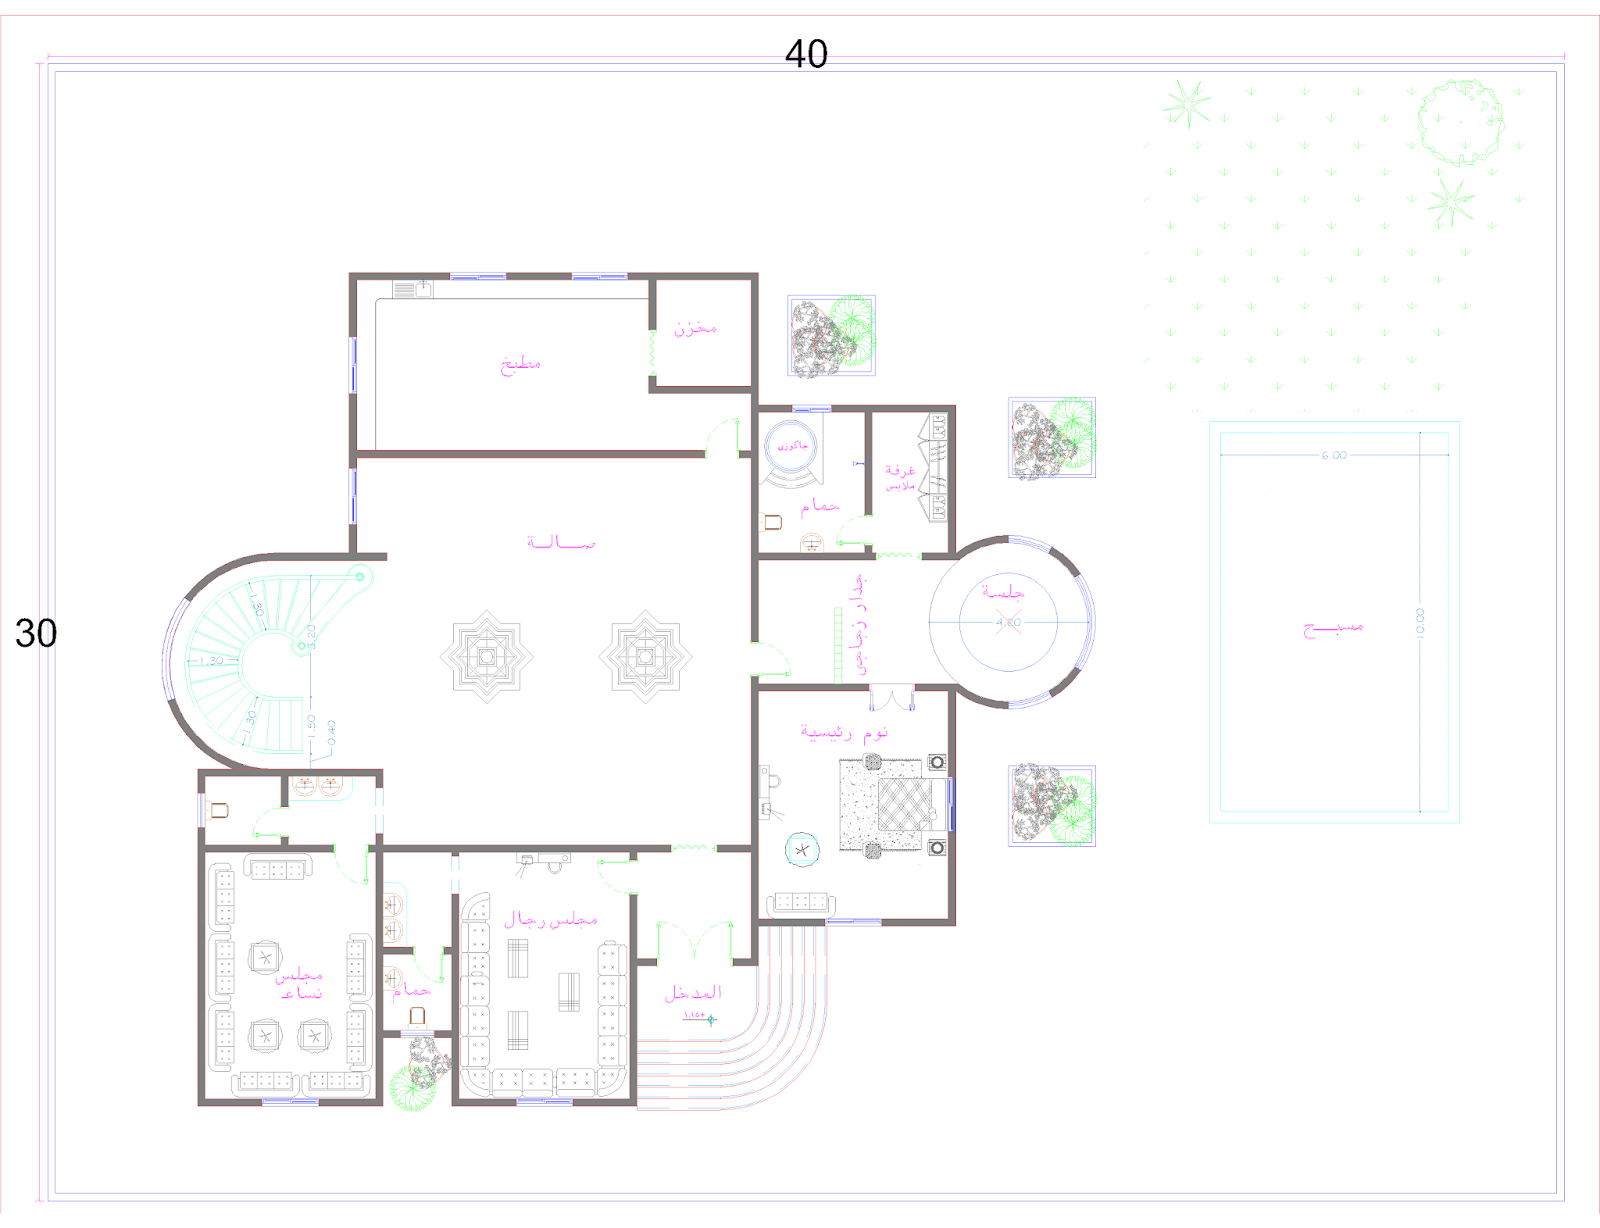 6d7e8f2426d85b47 French Country Style Area Rugs French Country Home Floor Plans together with Flemish Manor House Plan further 1500 Sq Ft House Plans together with D8 A7 D8 AC D9 85 D9 84 20 D8 AA D8 B5 D8 A7 D9 85 D9 8A D9 85 20 D9 81 D9 84 D9 84 20 D8 AF D9 88 D8 B1 D9 8A D9 86 20 D8 AF D8 A7 D8 AE D9 84 20 D9 88 D8 AE D8 A7 D8 B1 D8 AC 20 20 D8 A7 D8 B1 D9 88 D8 B9 20 D8 AA D8 B5 D8 A7 D9 85 D9 8A D9 85 20 D9 81 D9 84 D9 84 20 D8 AF D9 88 D8 B1 D9 8A D9 86 20 D8 AC D9 85 D9 8A D9 84 D8 A9 moreover Decorative Elements Border And Page Rules Vector 3588279. on rustic home plans with pictures